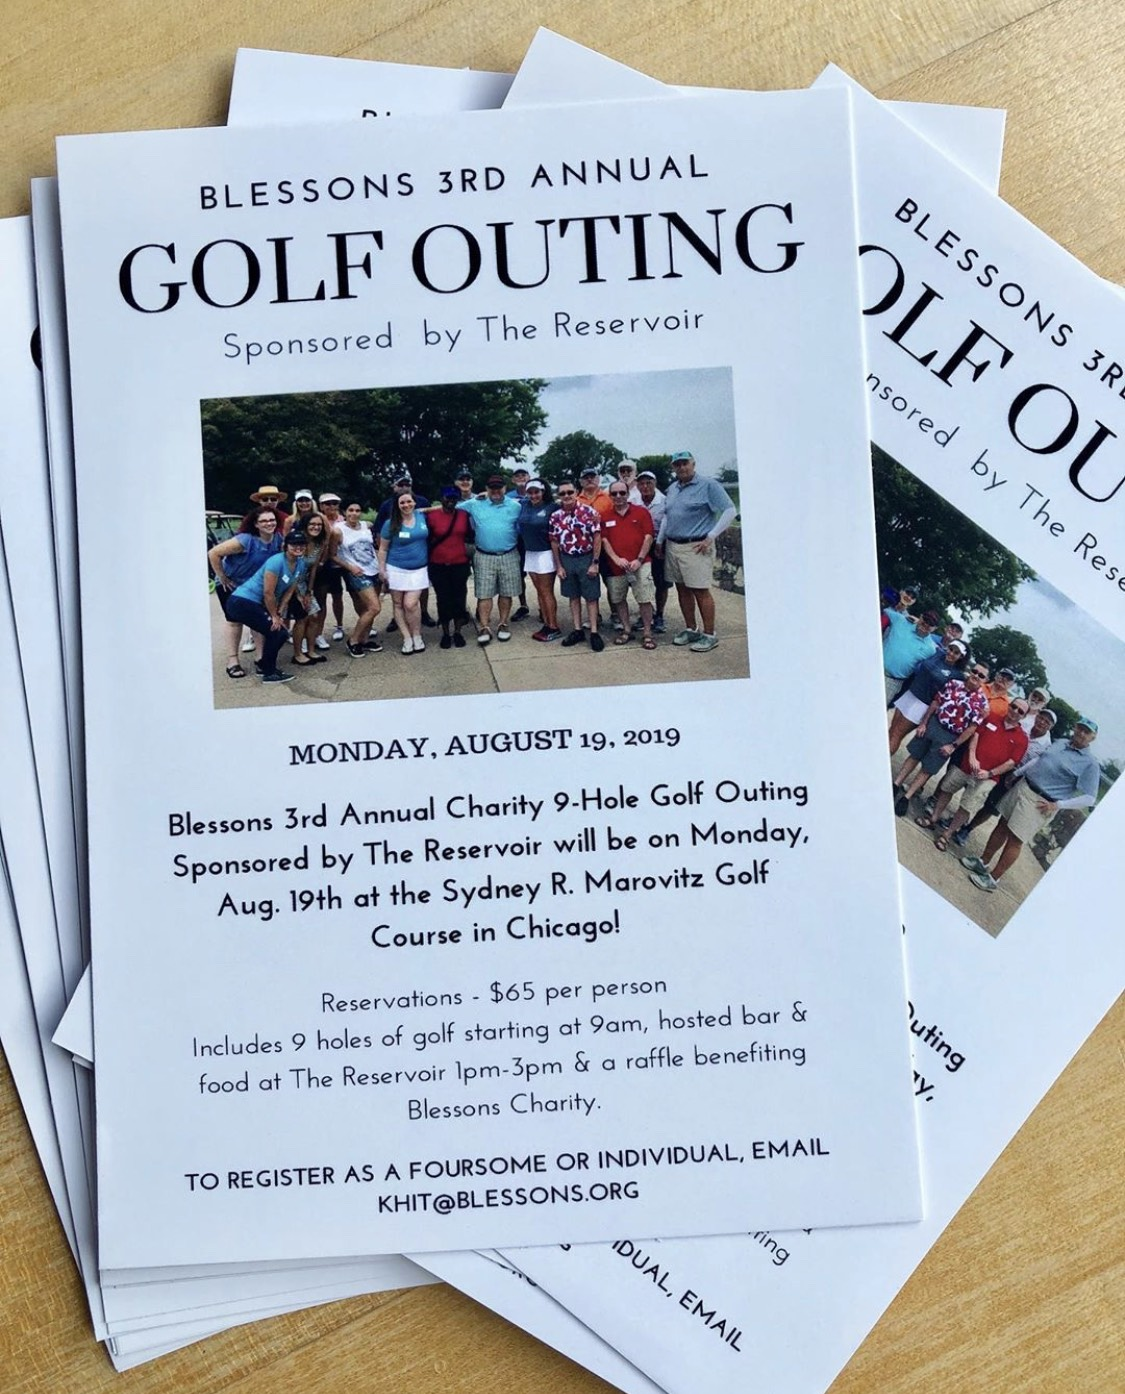 3rd Blessons Annual Reservoir Charity Golf Outing  Monday, Aug. 19th, 2019